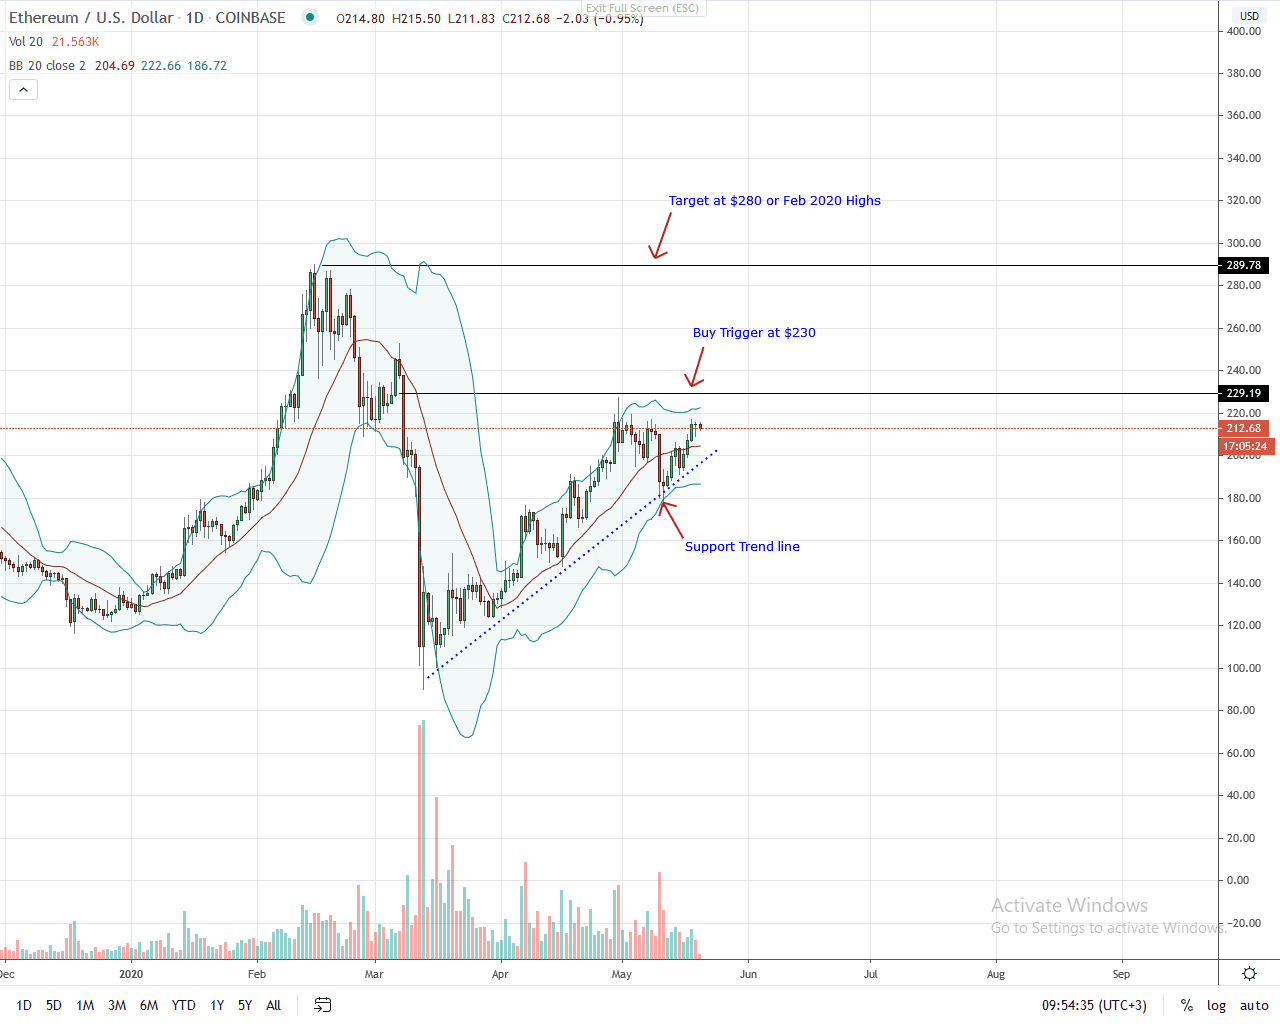 Ethereum Daily Chart for May 20